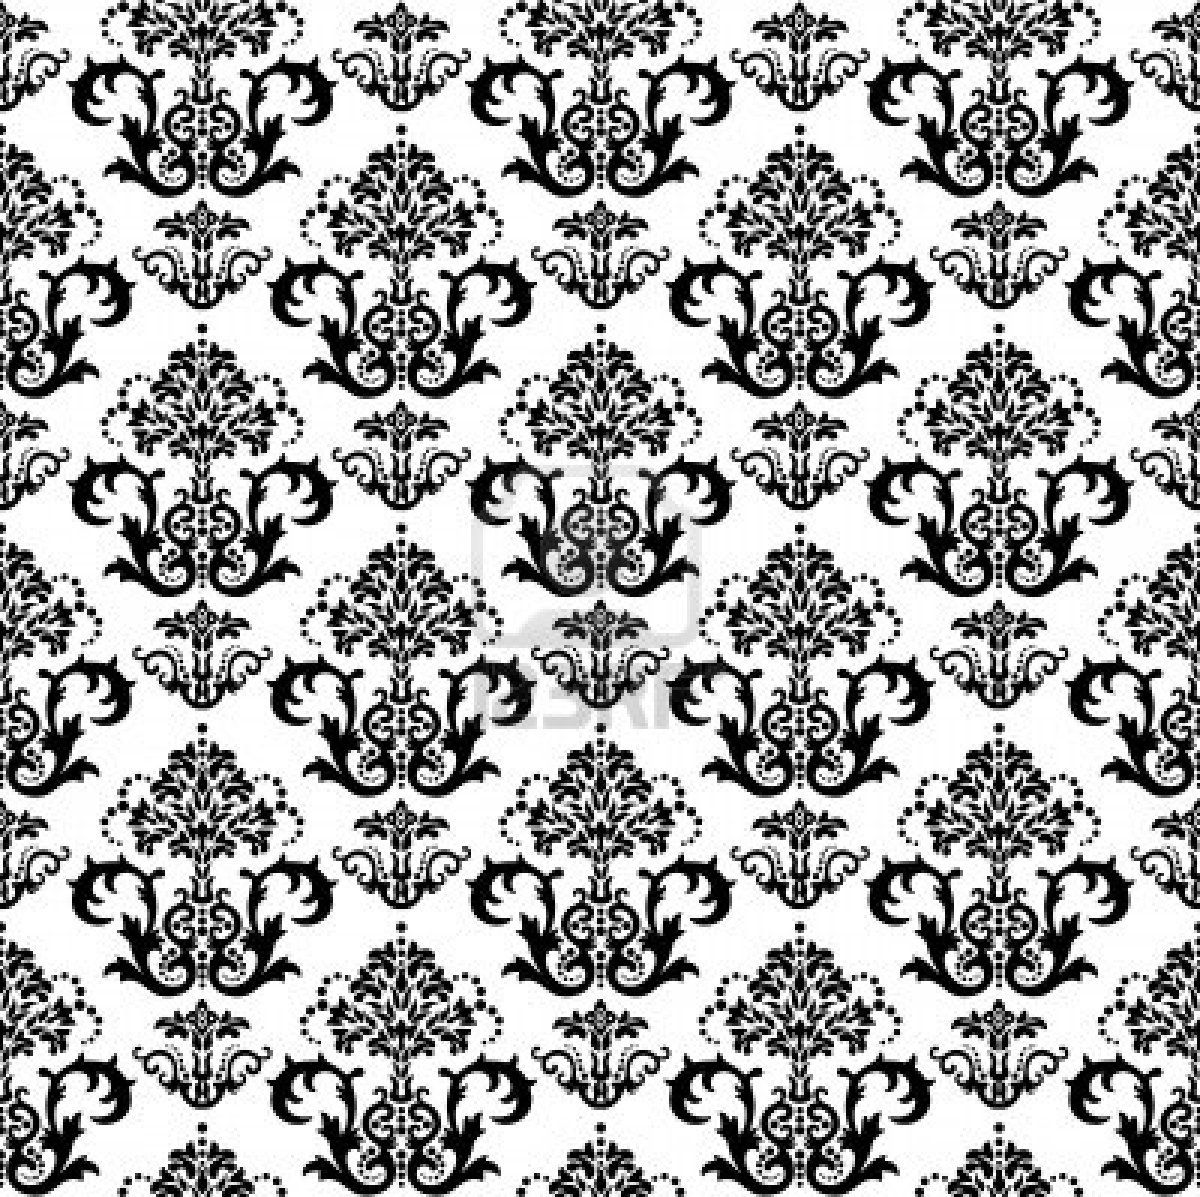 Seamless Black And White Fl Damask Wallpaper